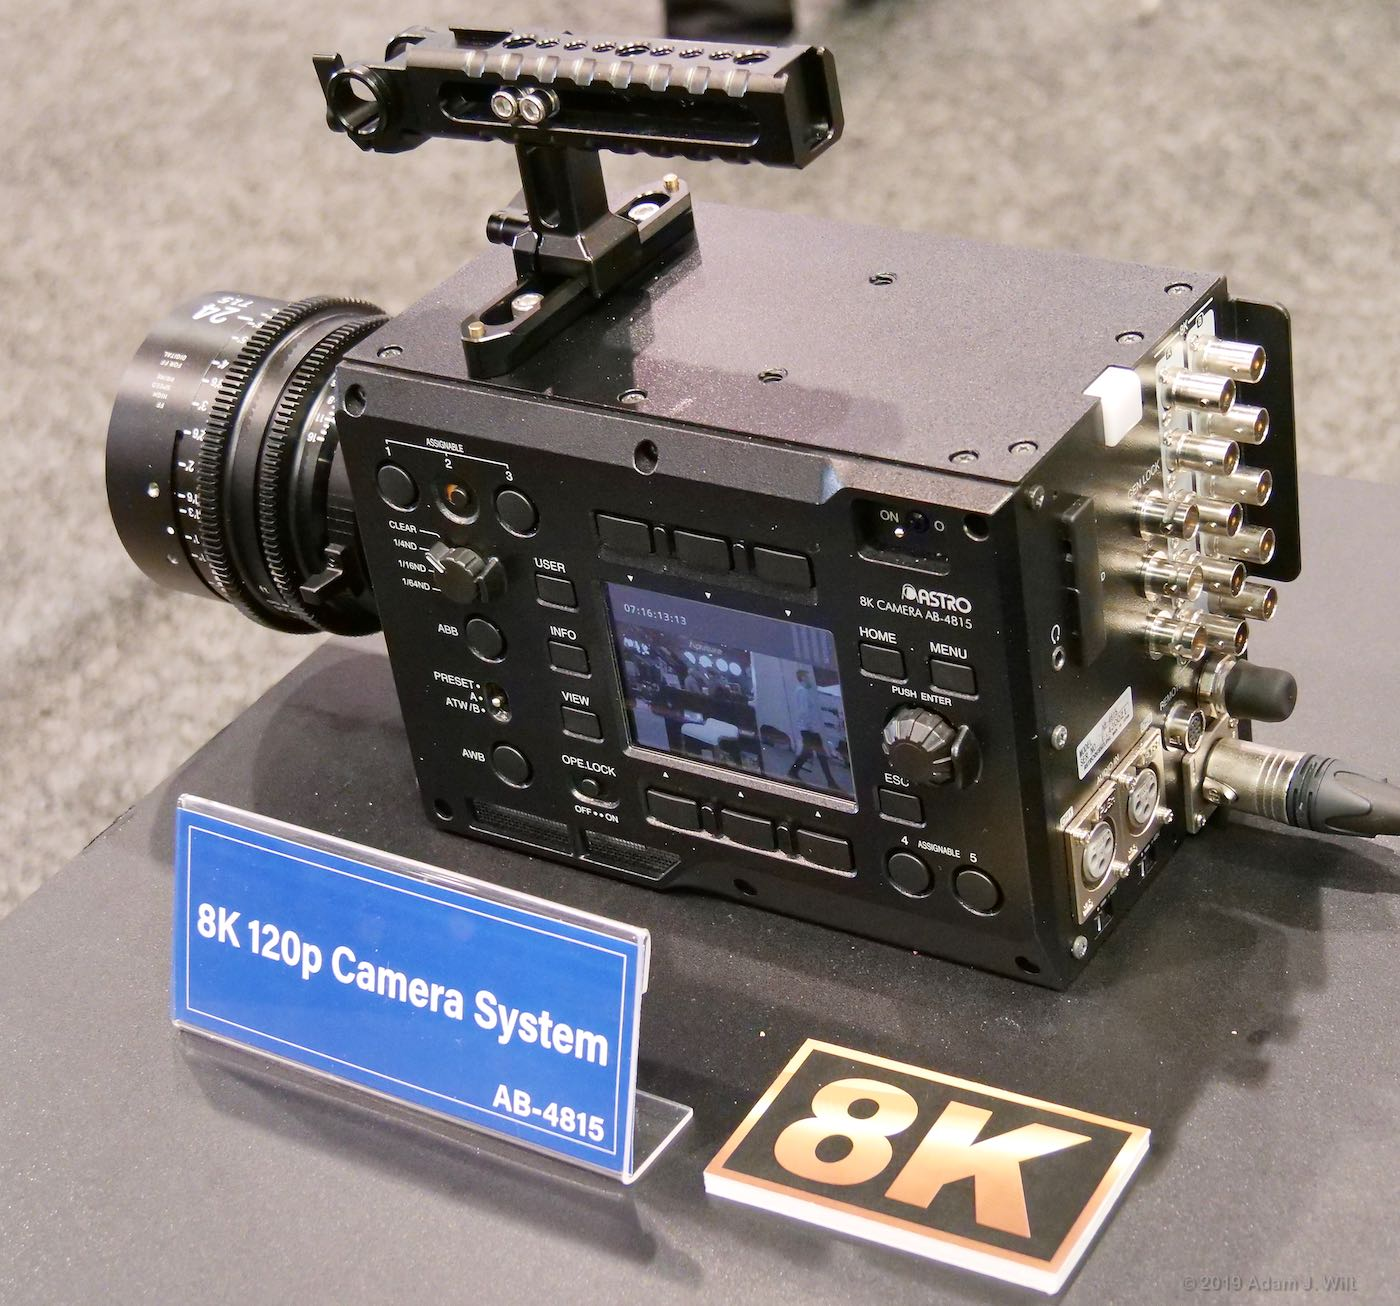 8K/120p camera at Astrodesign. It's about the size of a Sony F55